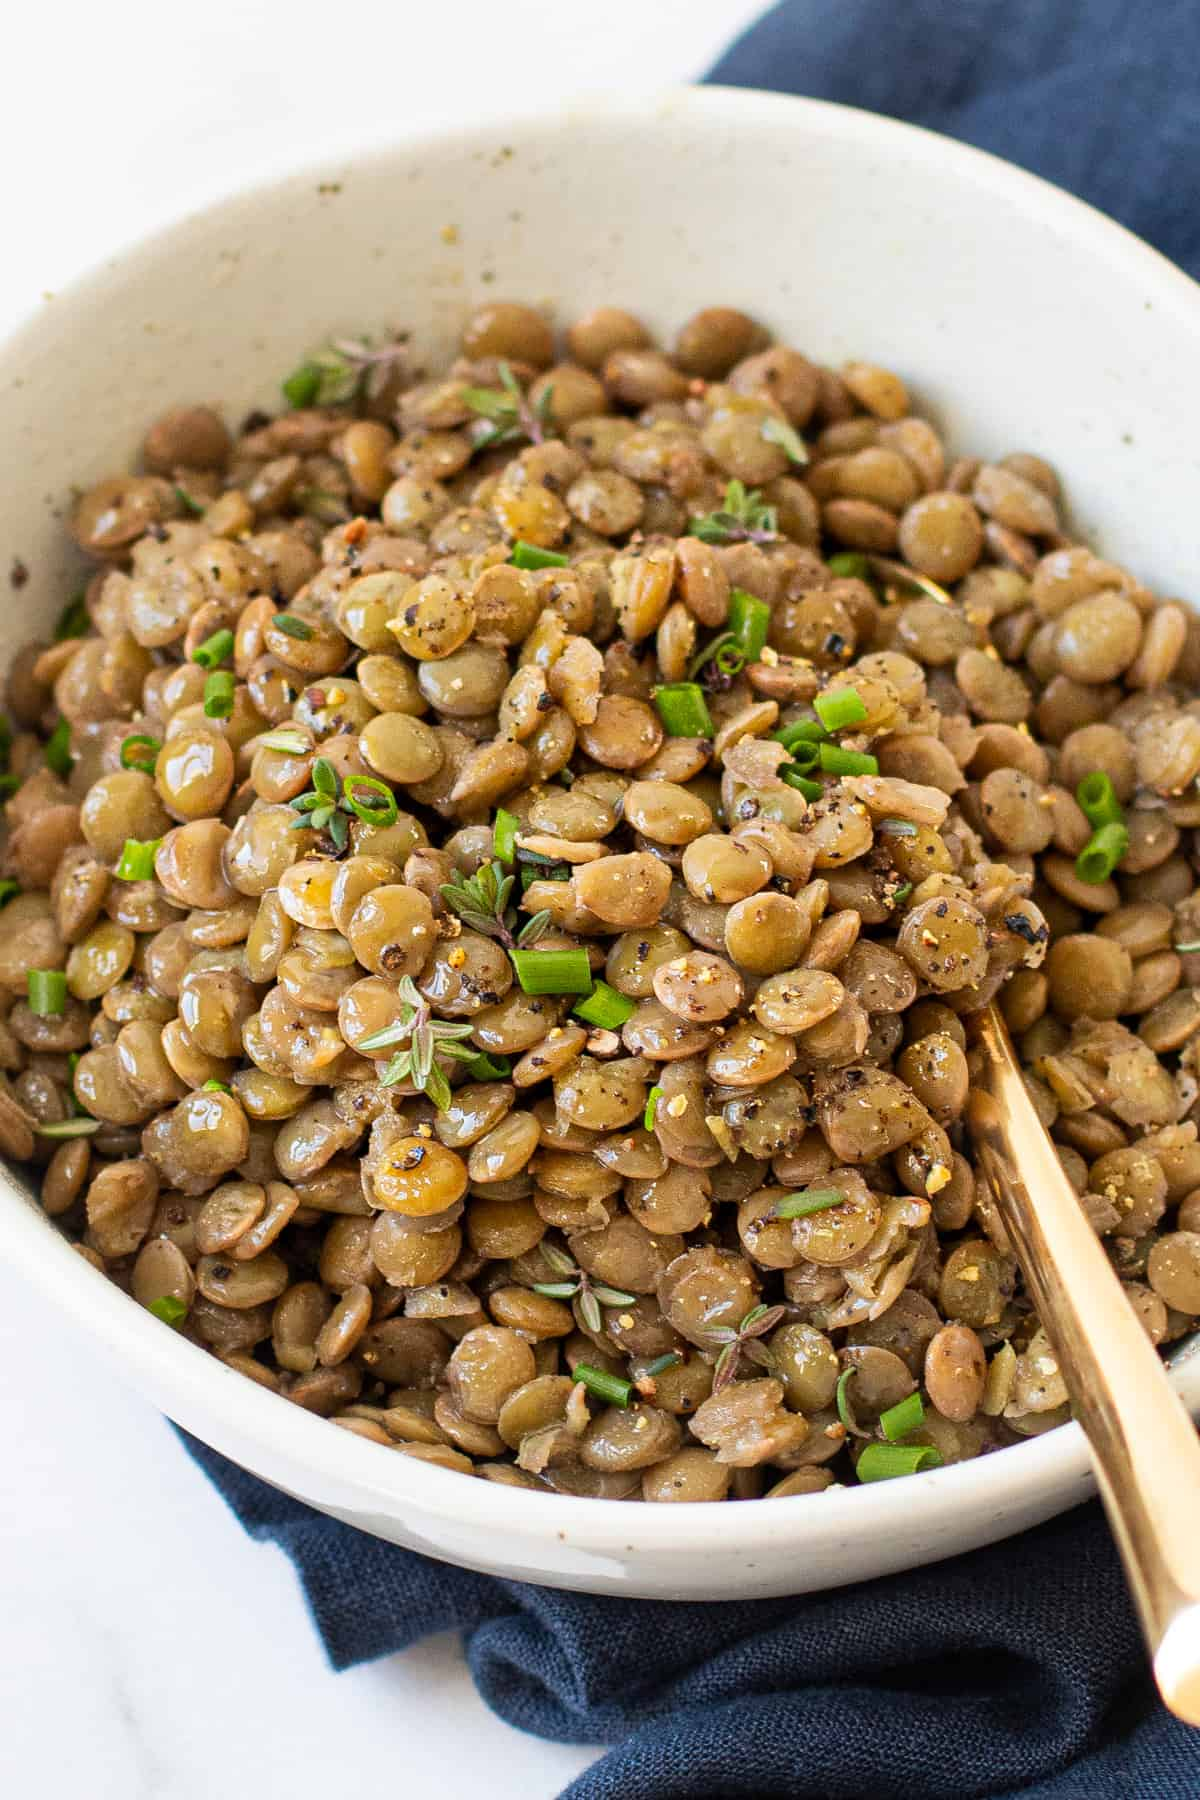 Cooked lentils with herbs in a bowl.